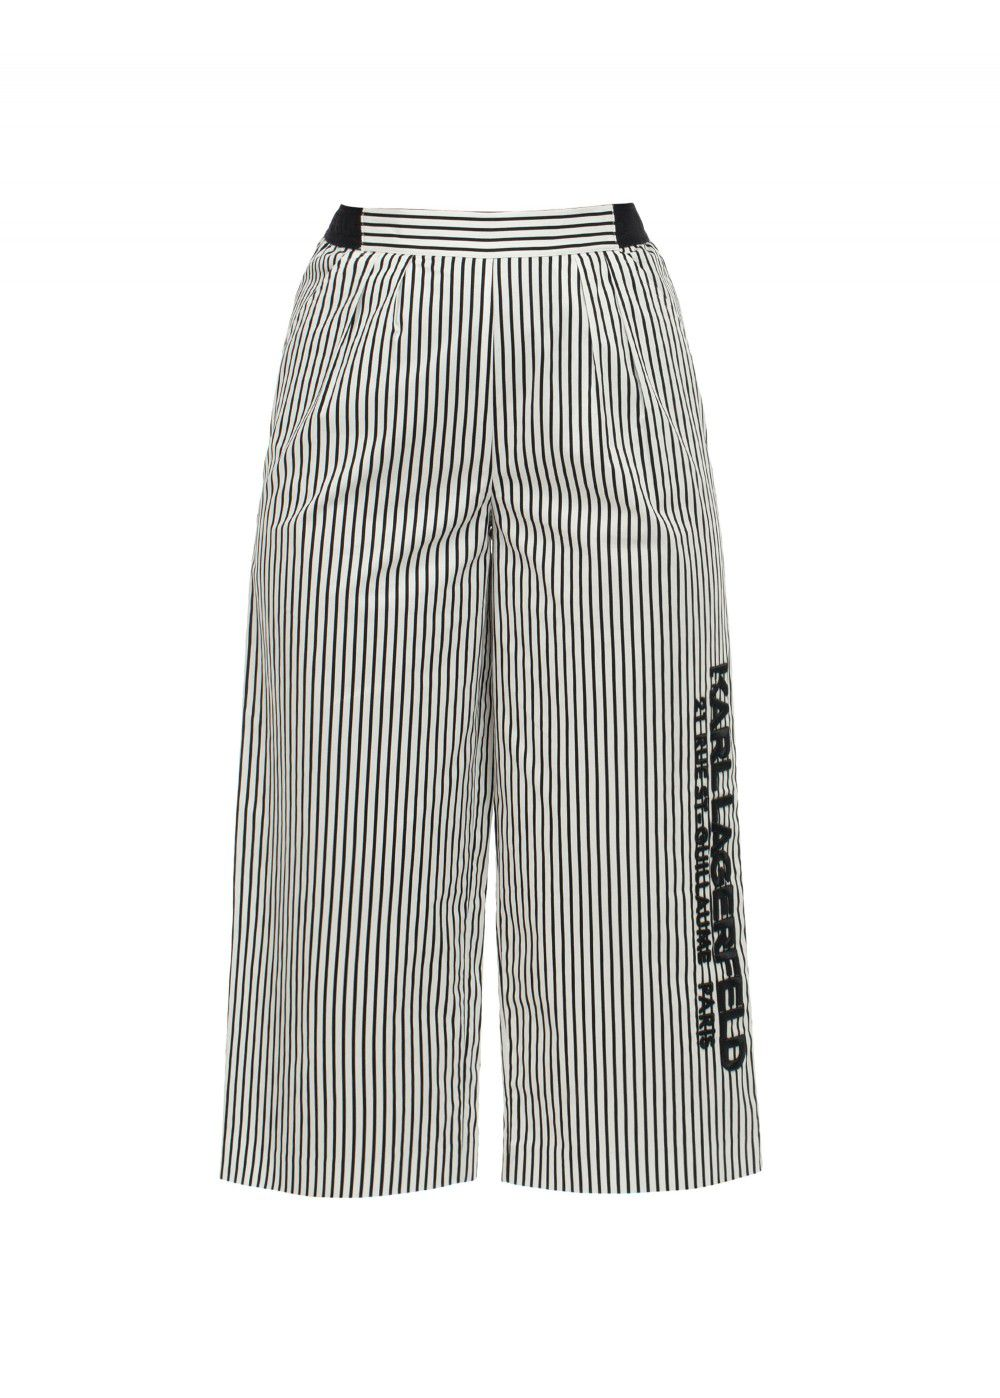 Karl Lagerfeld Cotton Trousers